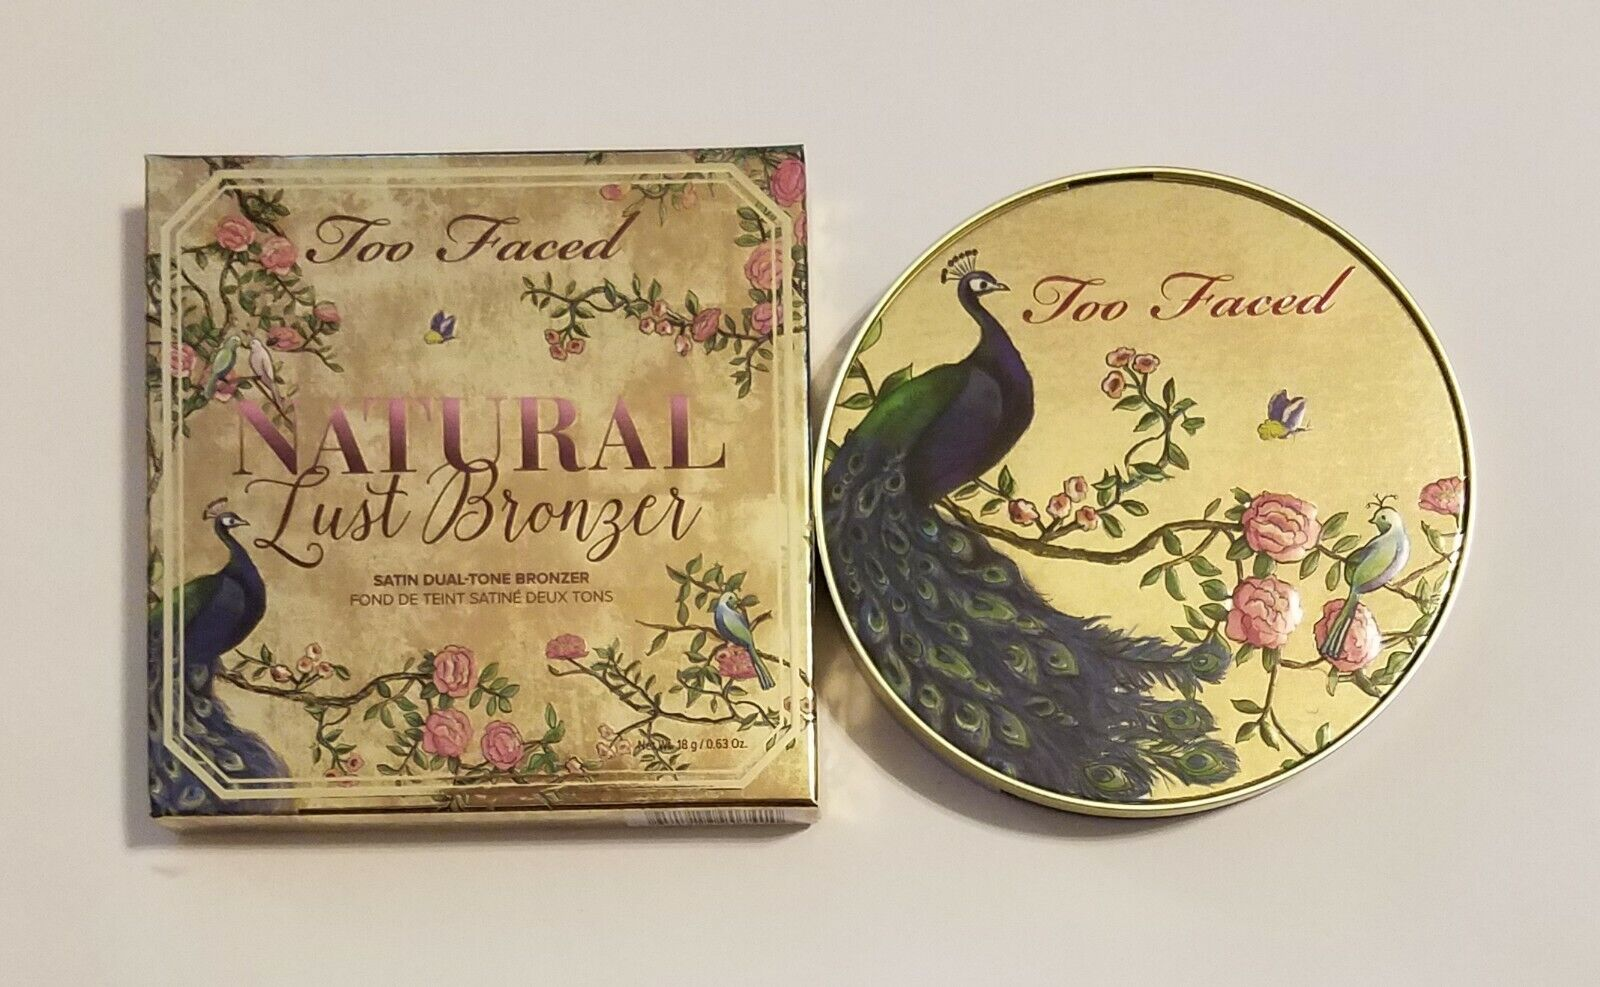 Too Faced Natural Lust Duo Bronzer Peacock JUMBO Sized Compa